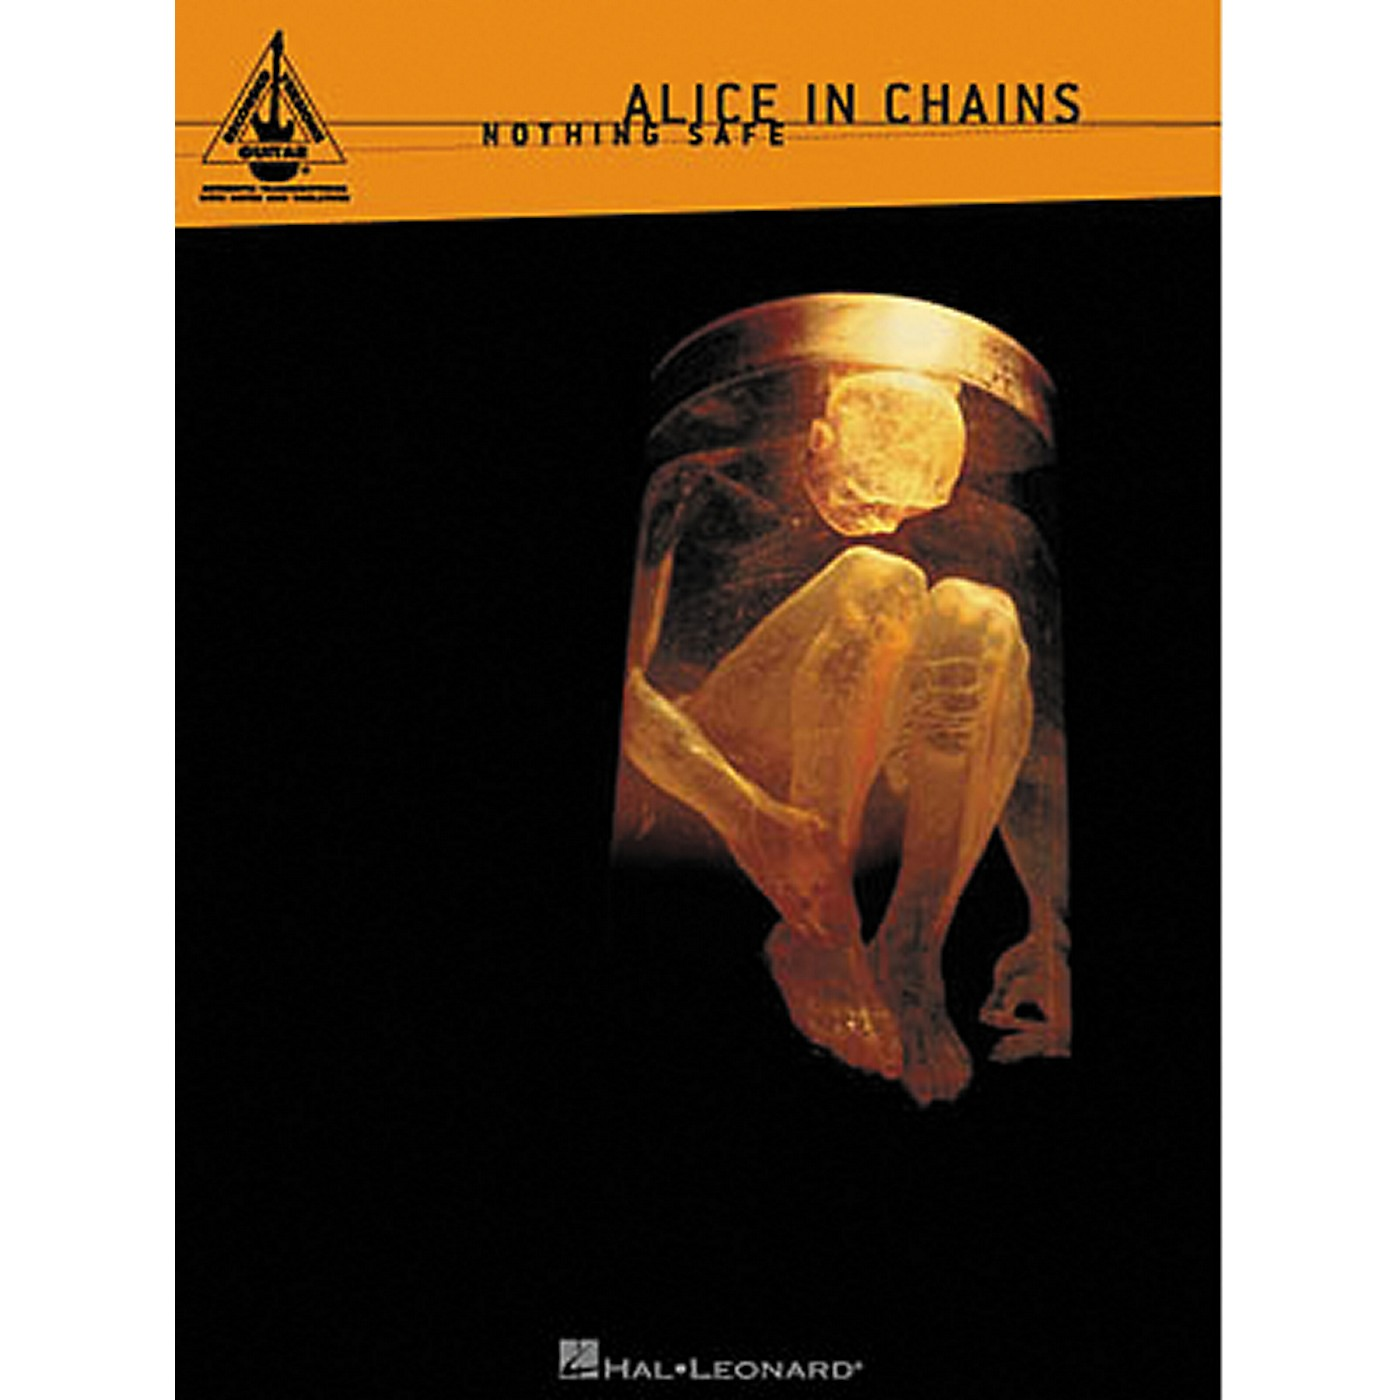 Hal Leonard Alice In Chains Nothing Safe Guitar Tab Songbook thumbnail